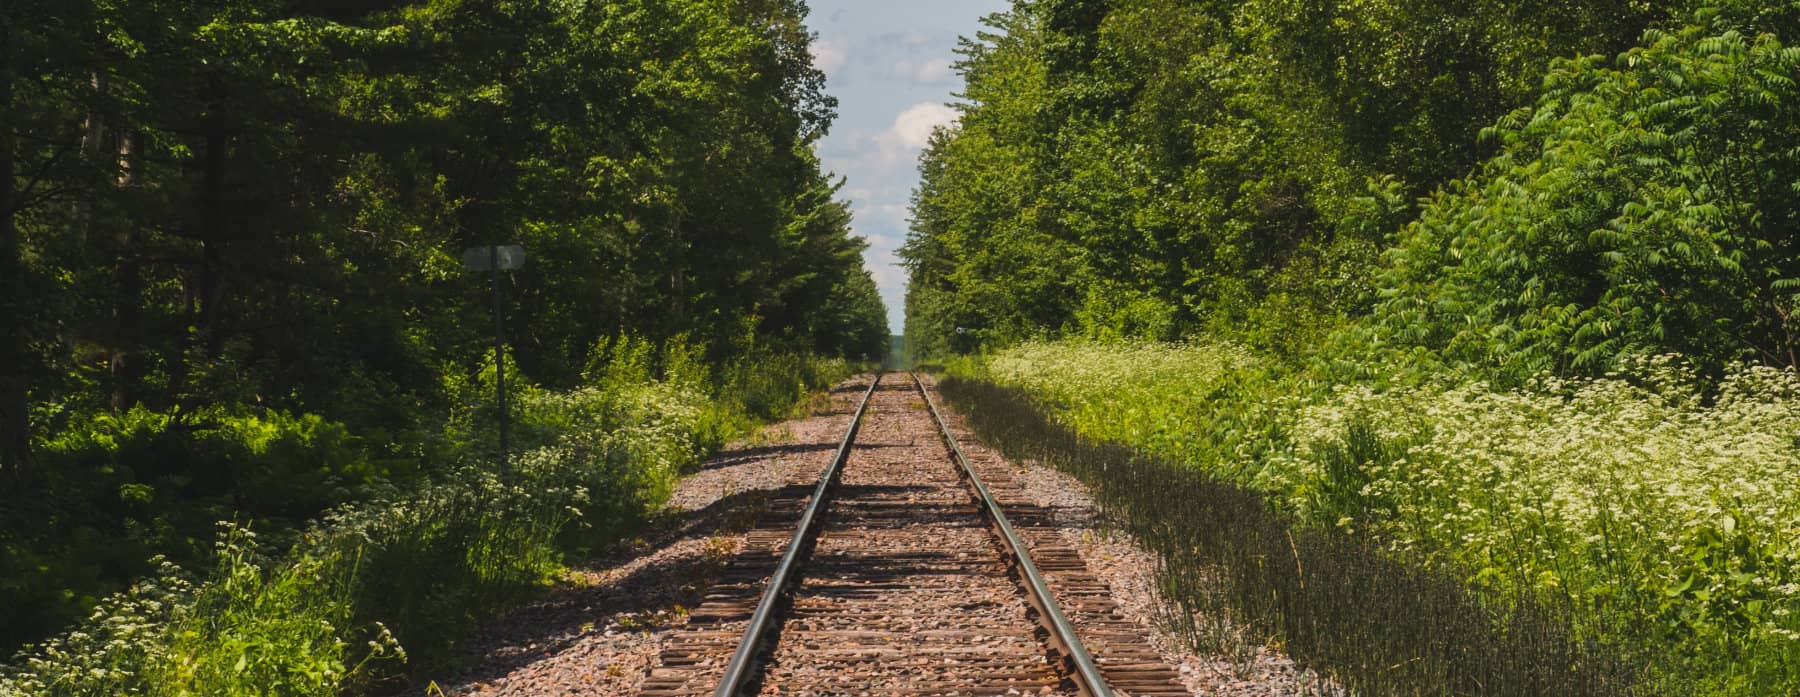 Train Tracks in Country